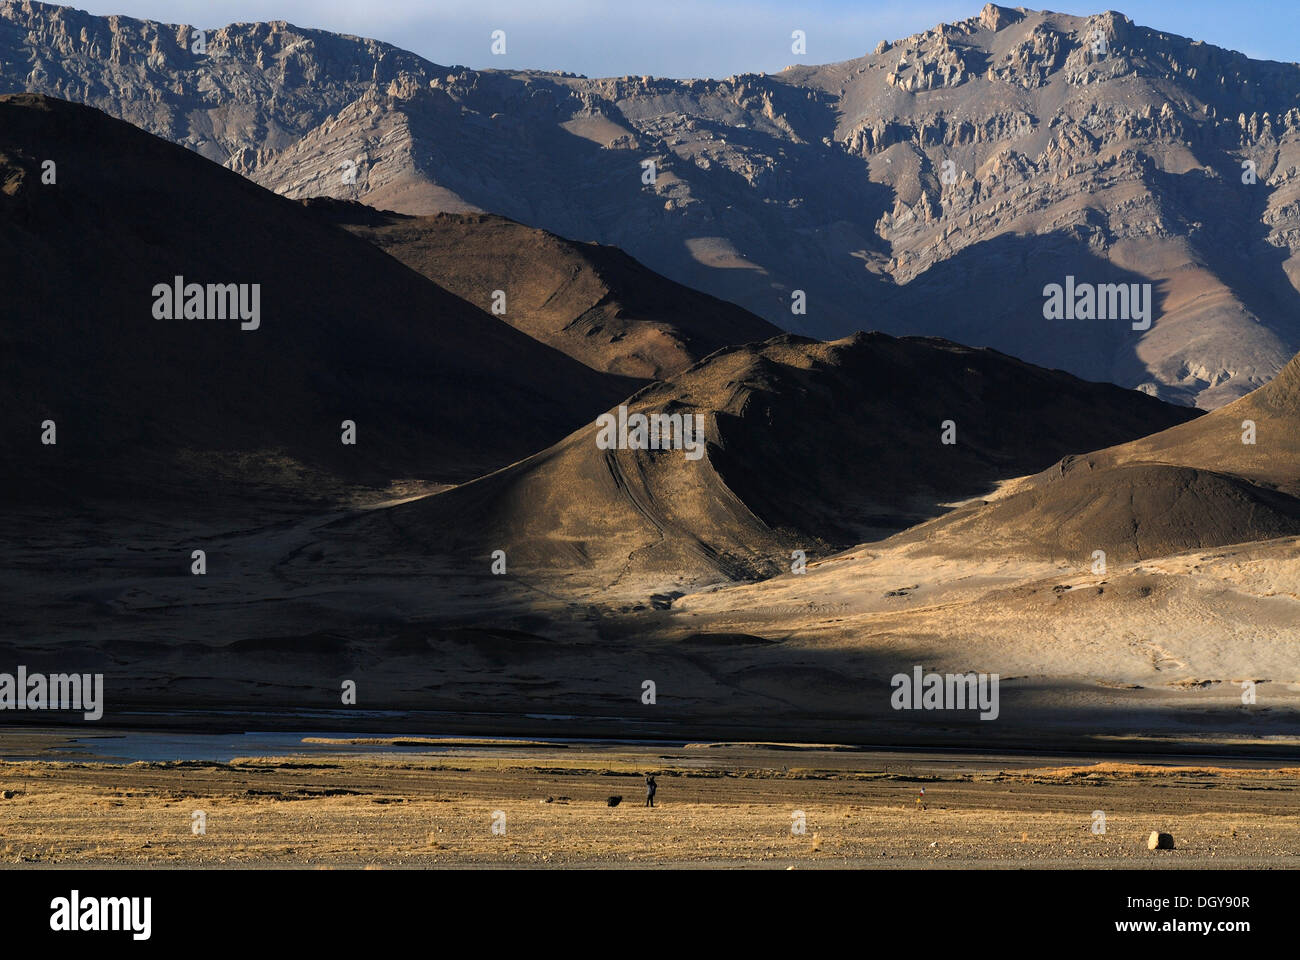 Shepherd with a dog in front of the dry brown landscape of the Himalayas at the Friendship Highways on the plateau of Tingri - Stock Image